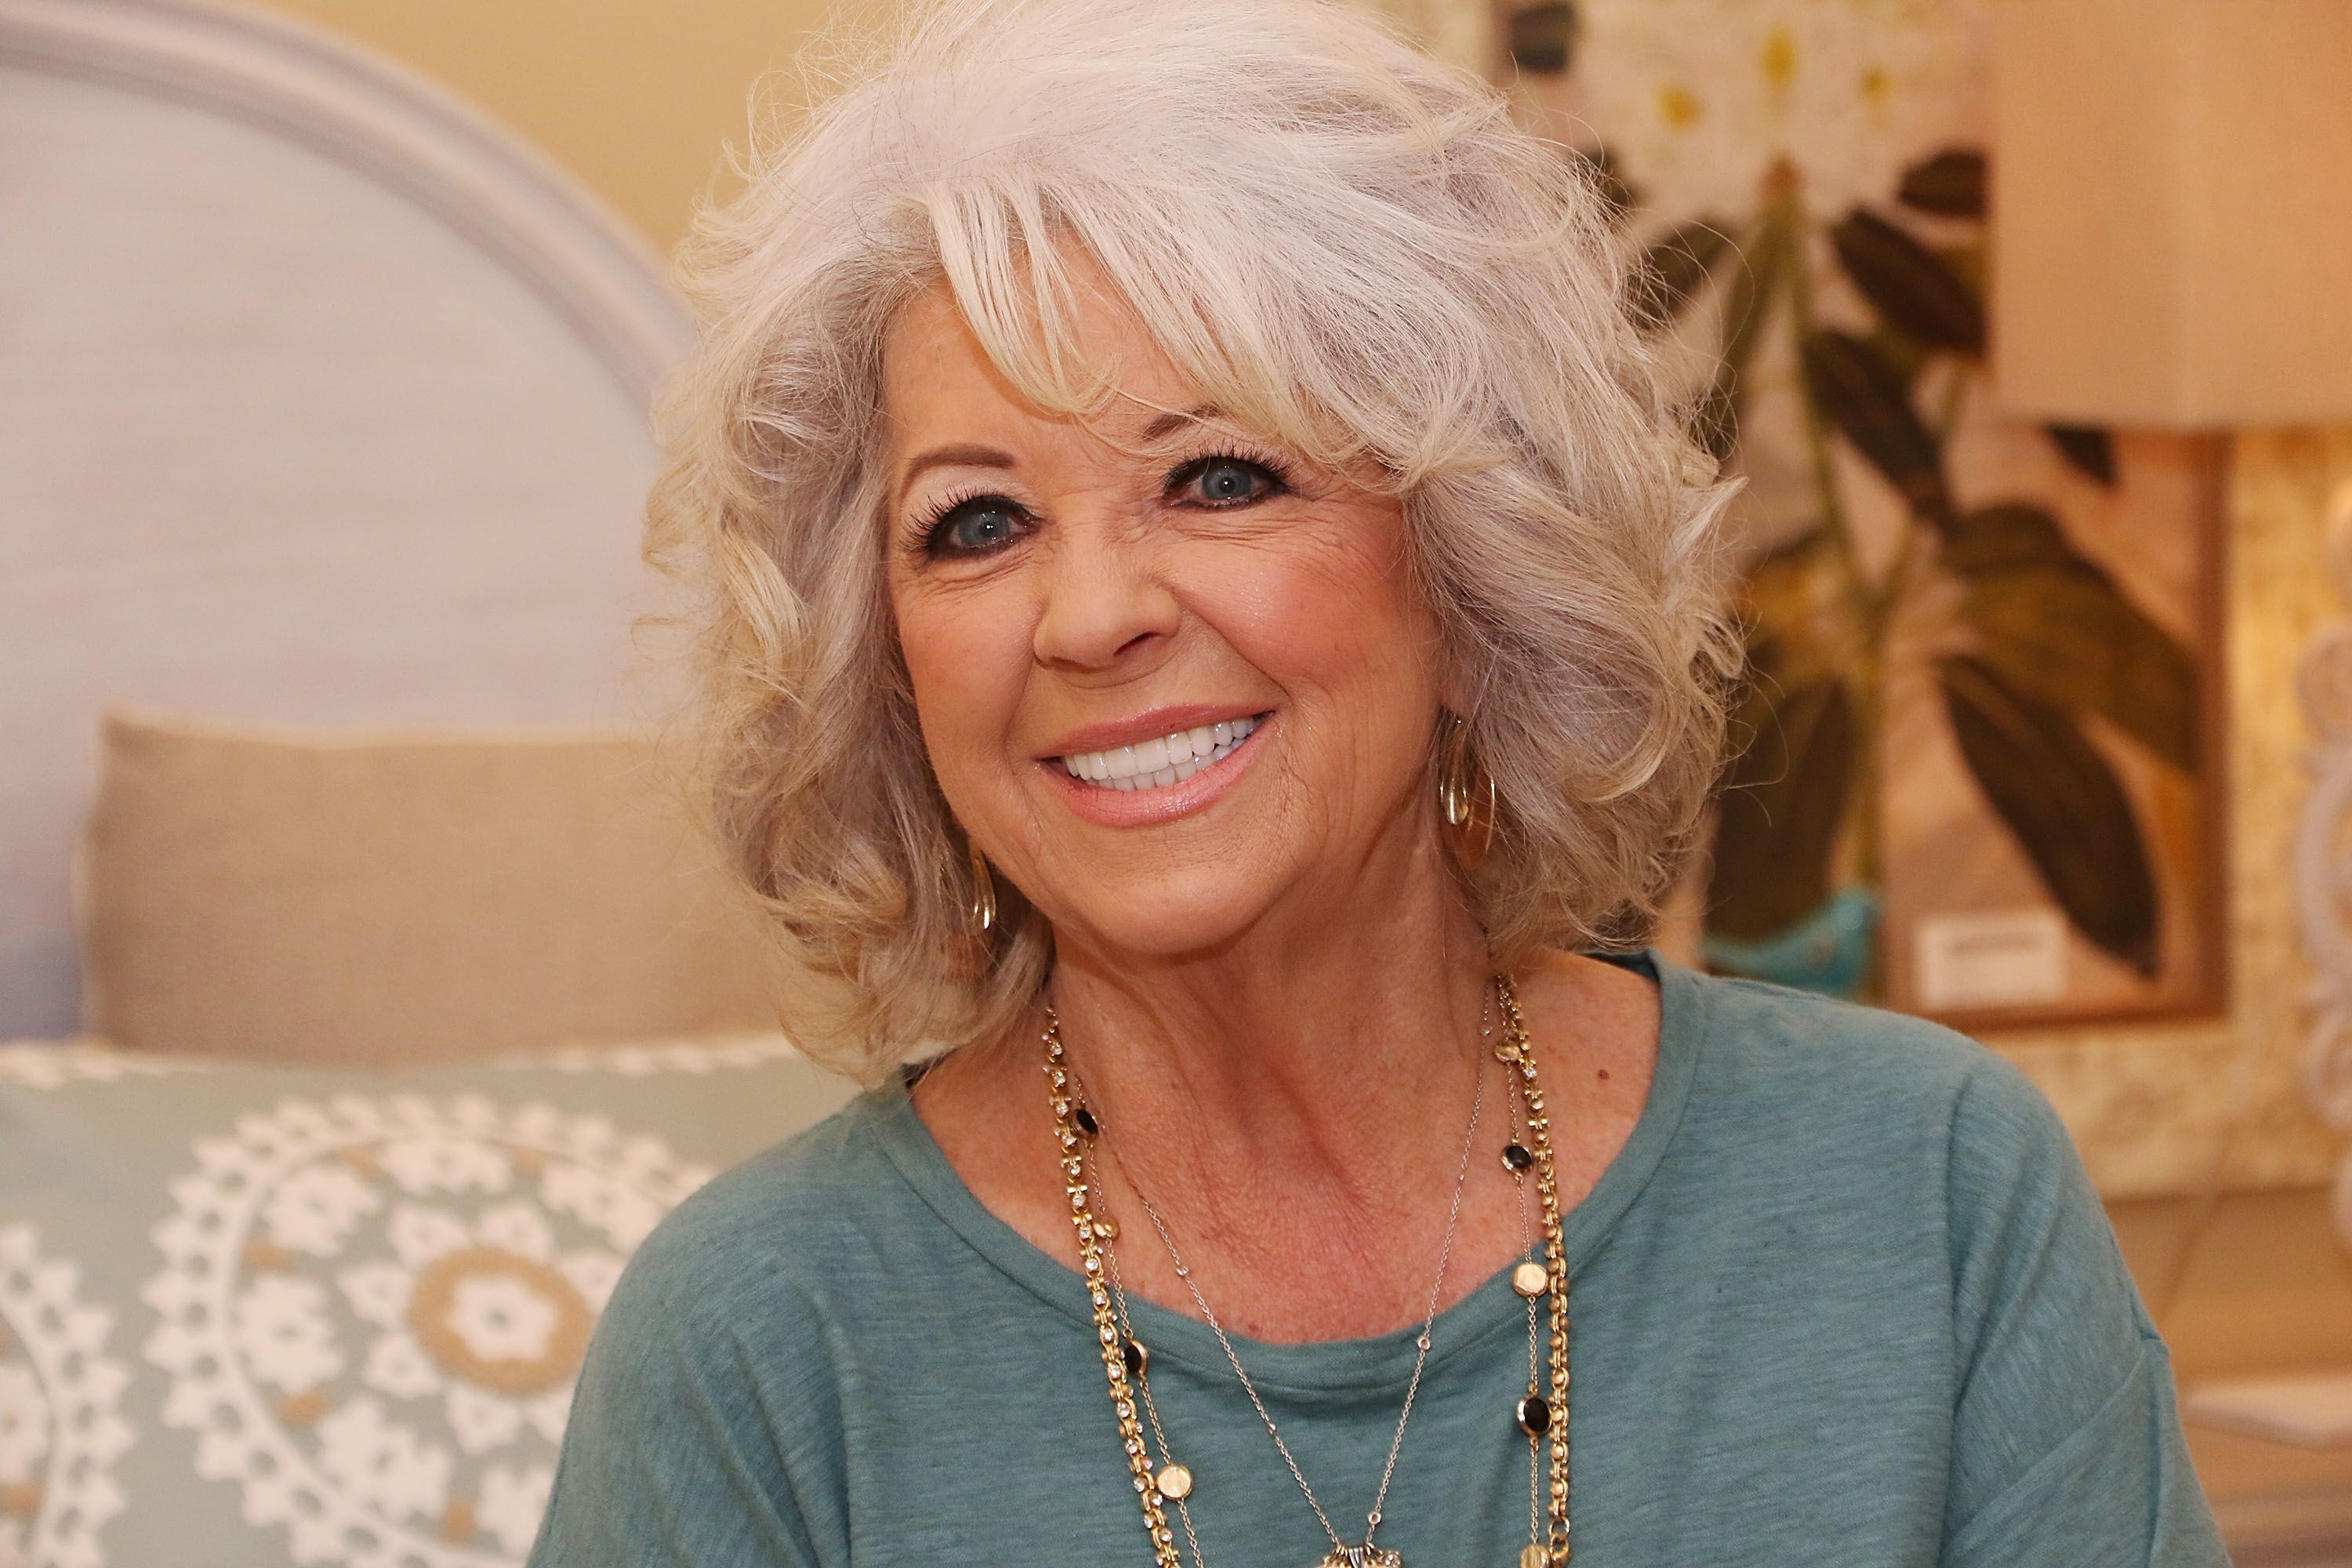 """Paula Deen signs copies of her book """"Cuts the Fat"""" in 2016 in Boca Raton, Florida 